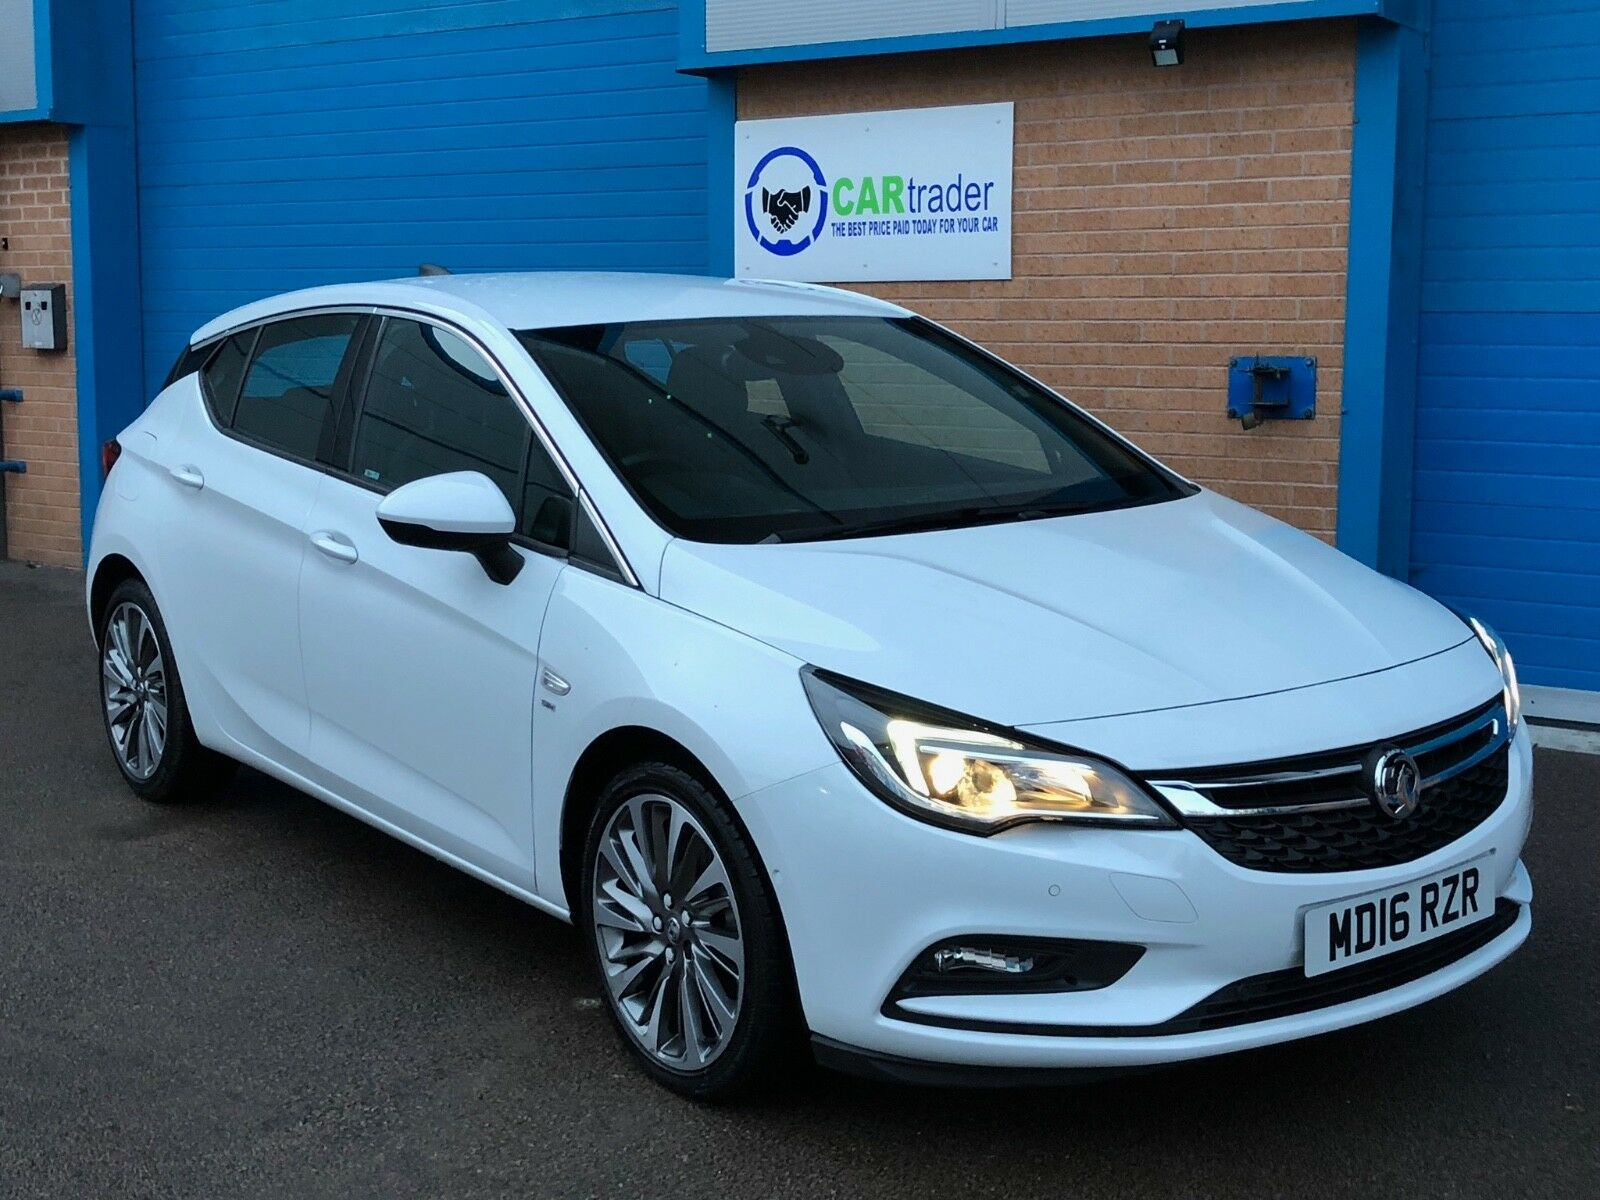 vauxhall astra diesel hatchback 1 6 cdti 16v 136 sri nav 8 picclick uk. Black Bedroom Furniture Sets. Home Design Ideas